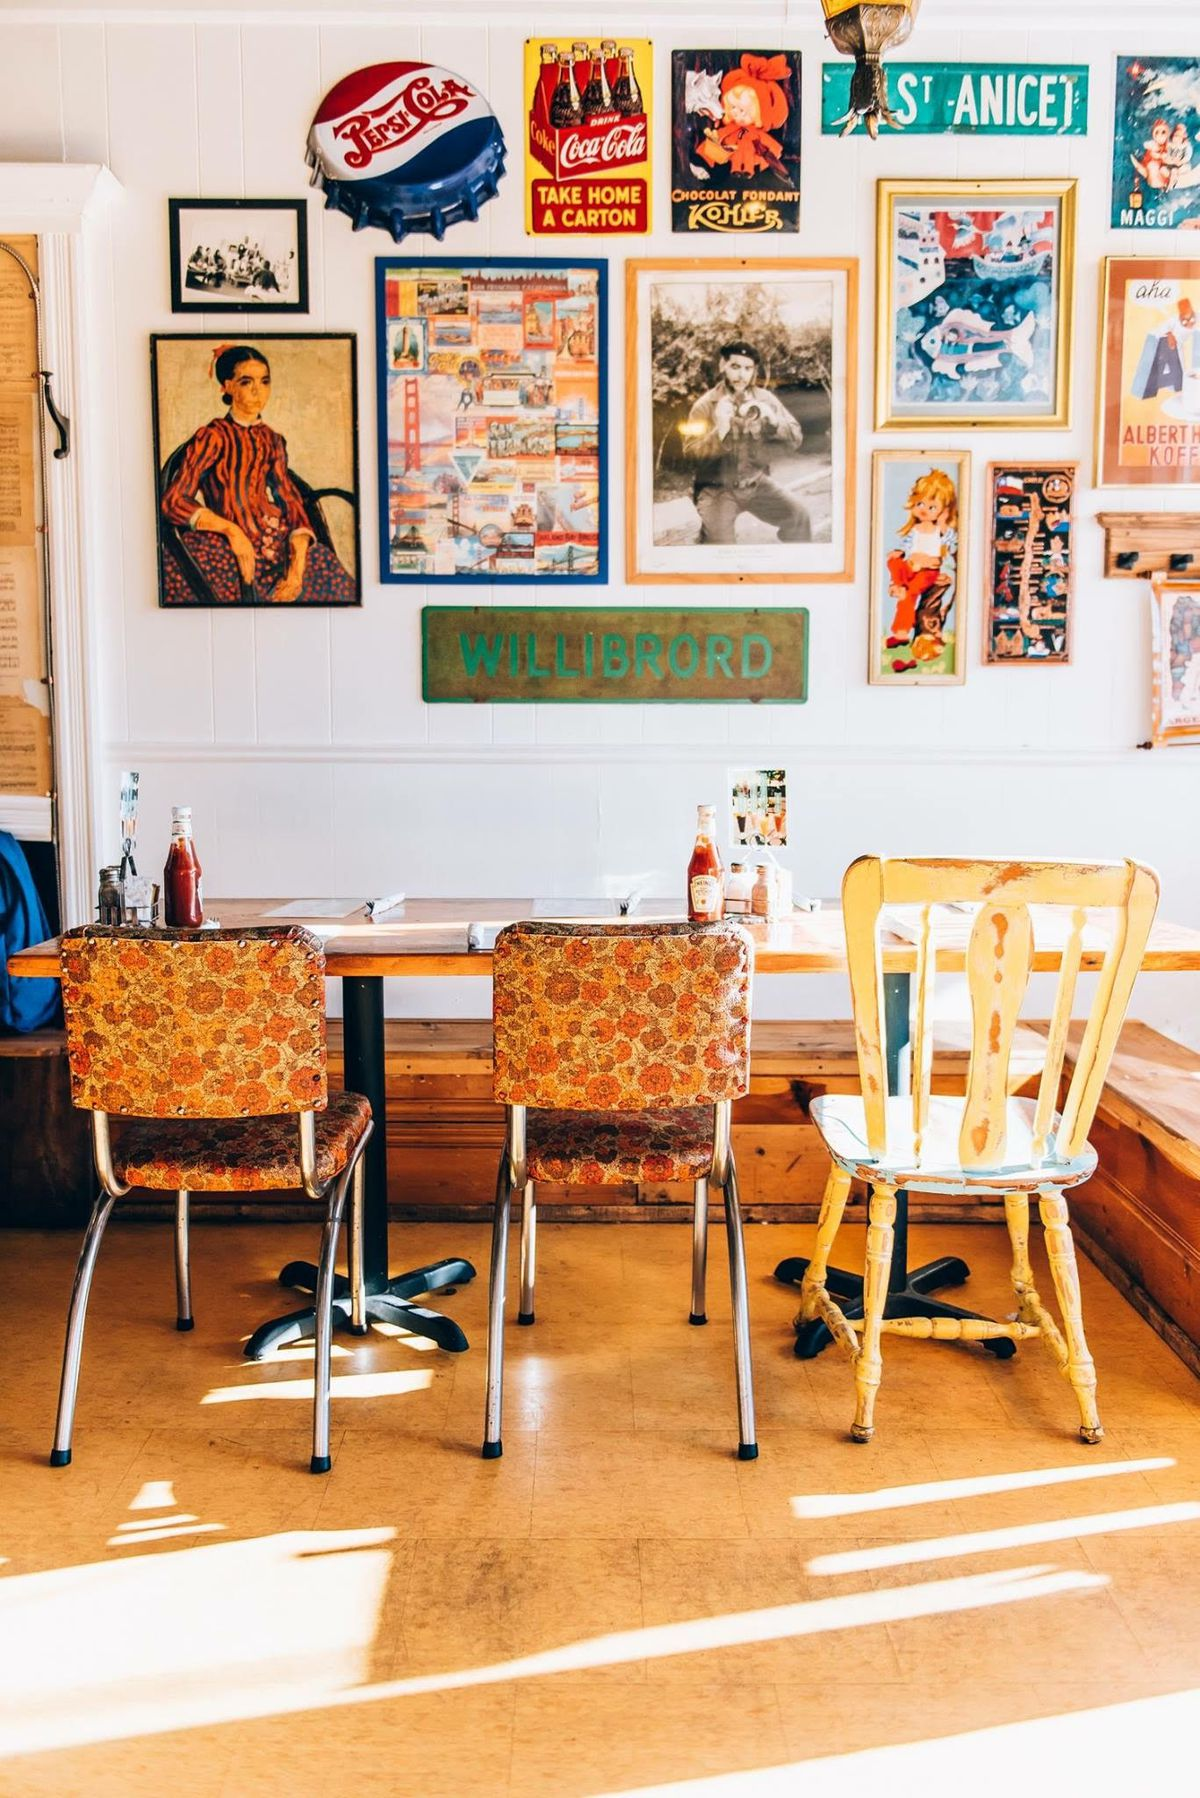 Vintage chairs, tables and wall decorations at Bagel St-Lo.